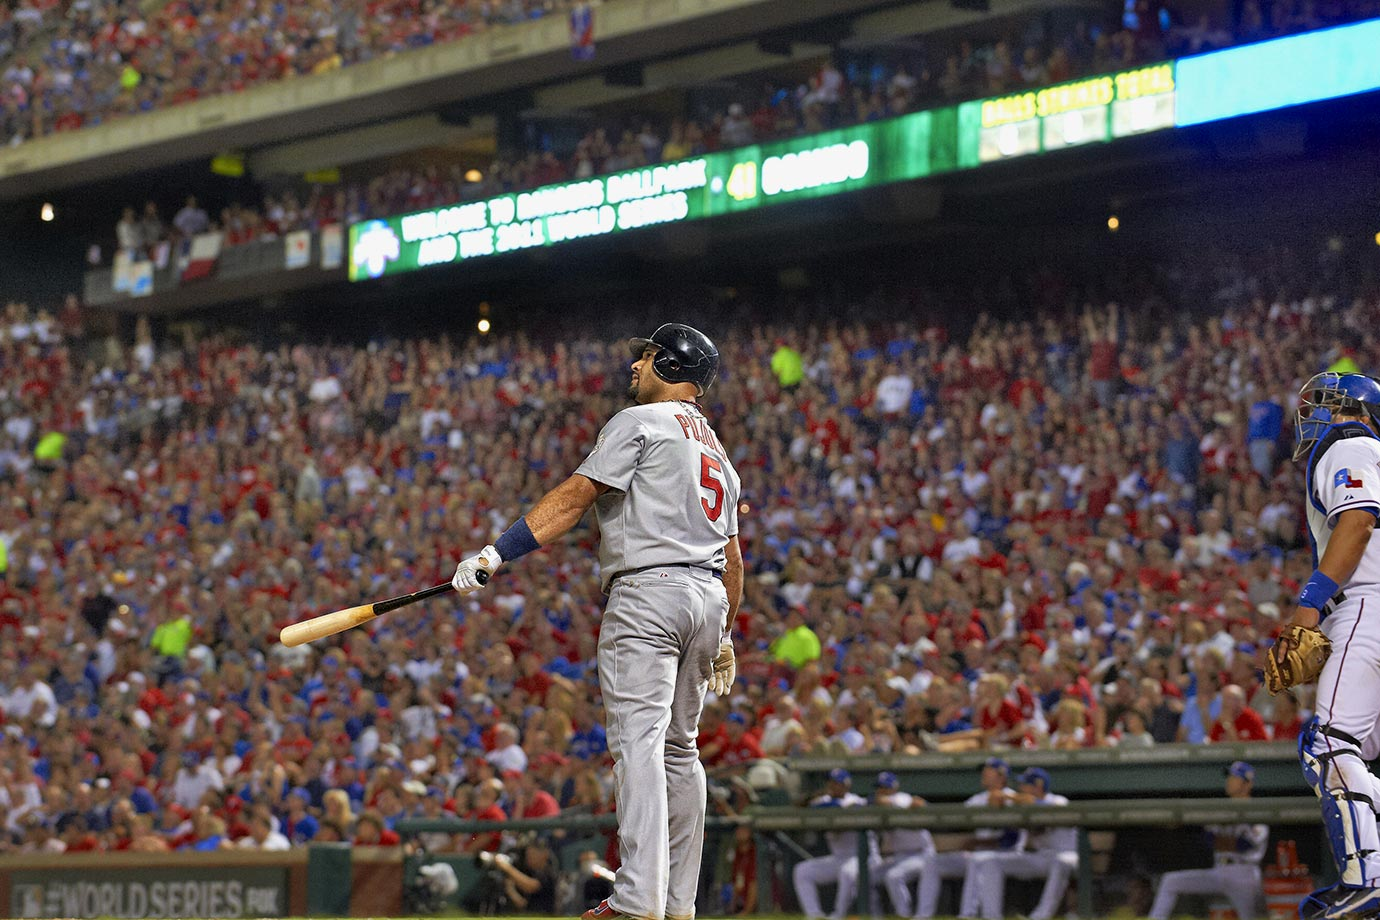 Albert Pujols had the most productive game in World Series history, going 5-for-6 with three homers and six RBIs, leading the Cards past the Rangers 16-7 in Game 3. Pujols became the third player to hit three homers in a Series game, joining Babe Ruth, who did it in 1926 and again in 1928, and Reggie Jackson's performance in 1977. His six RBIs tied the record in a game, matching Bobby Richardson in 1960 and Hideki Matsui in 2009.